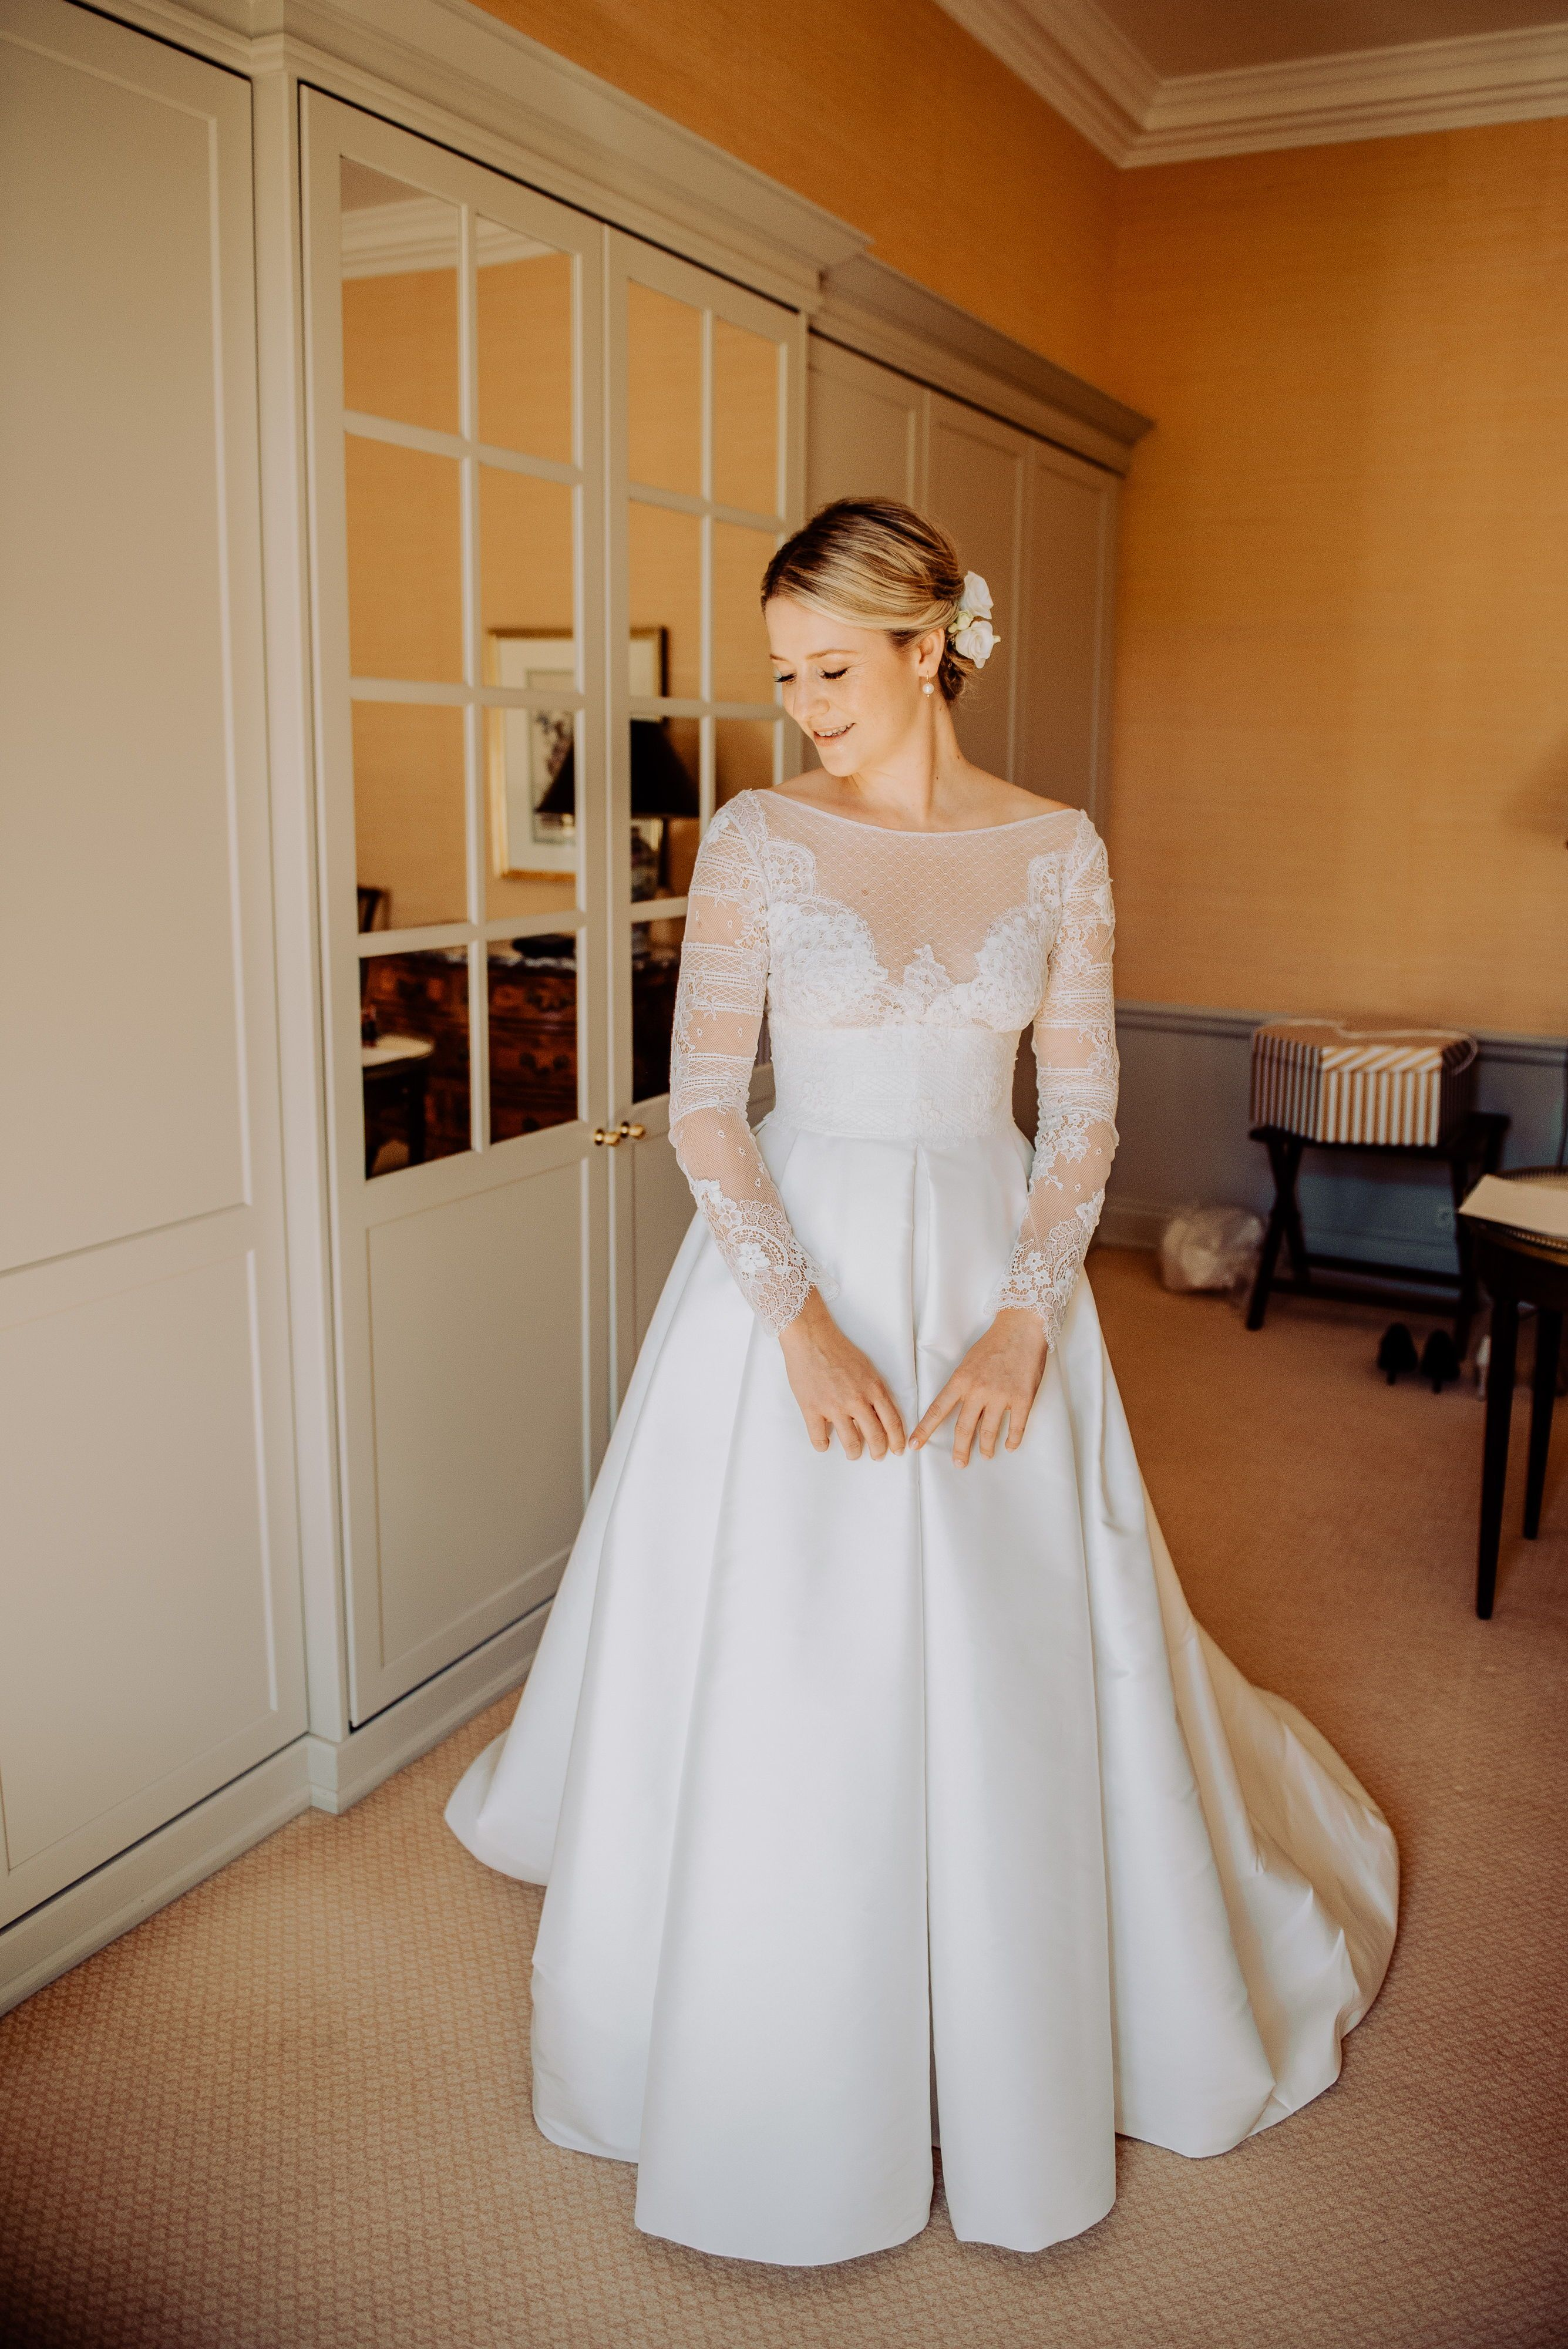 e8d784af5 Victoria in Jesus Peiro 8004 lace wedding dress with pockets from Miss Bush  luxury bridal boutique in Surrey for a classic, elegant wedding in Germany.